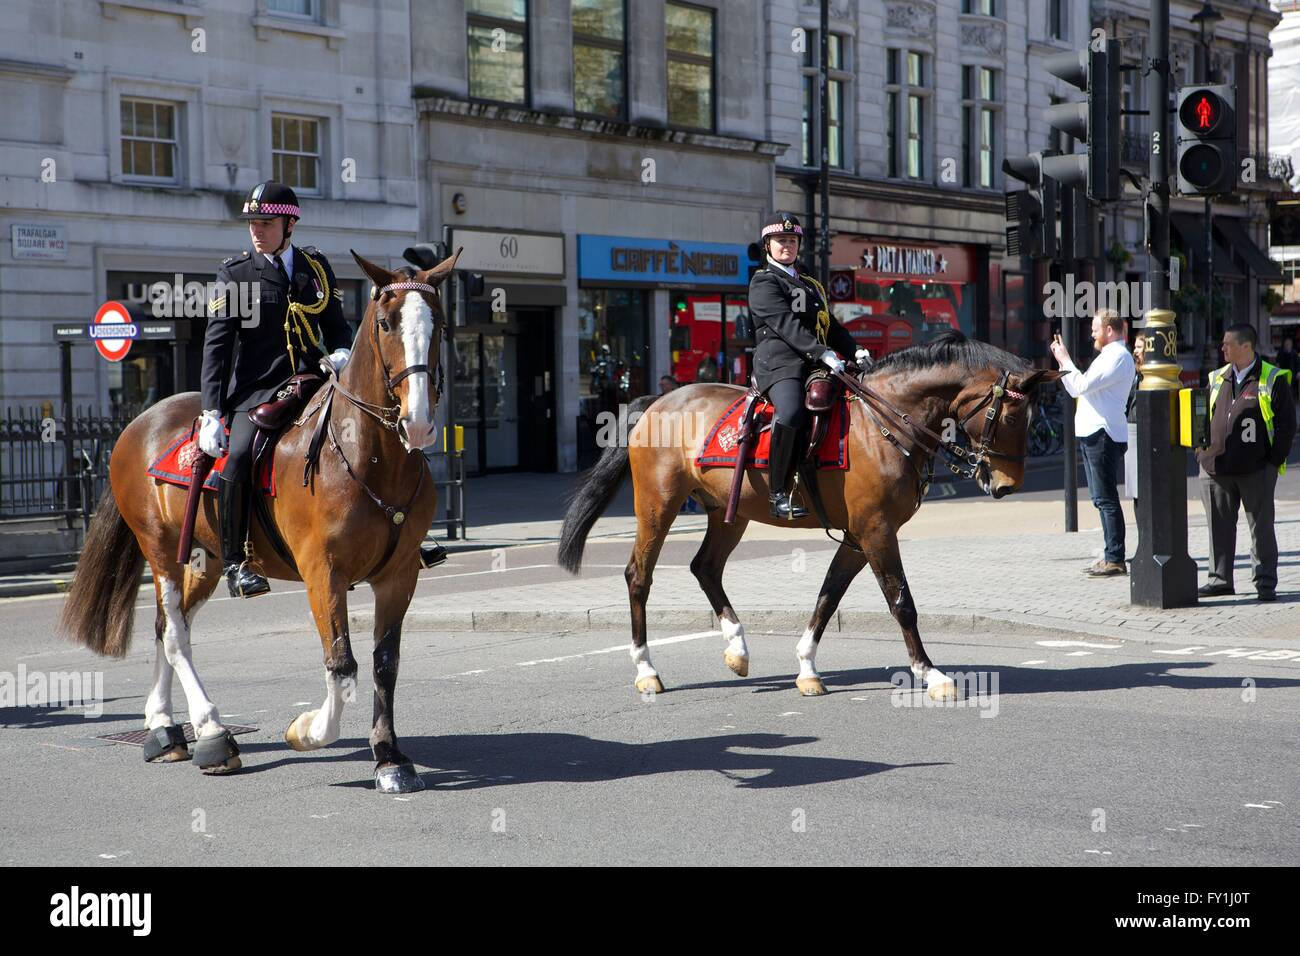 London, United Kingdom. 20 April 2016. The Household Cavalry pass through Trafalgar Square whilst exercising their Stock Photo